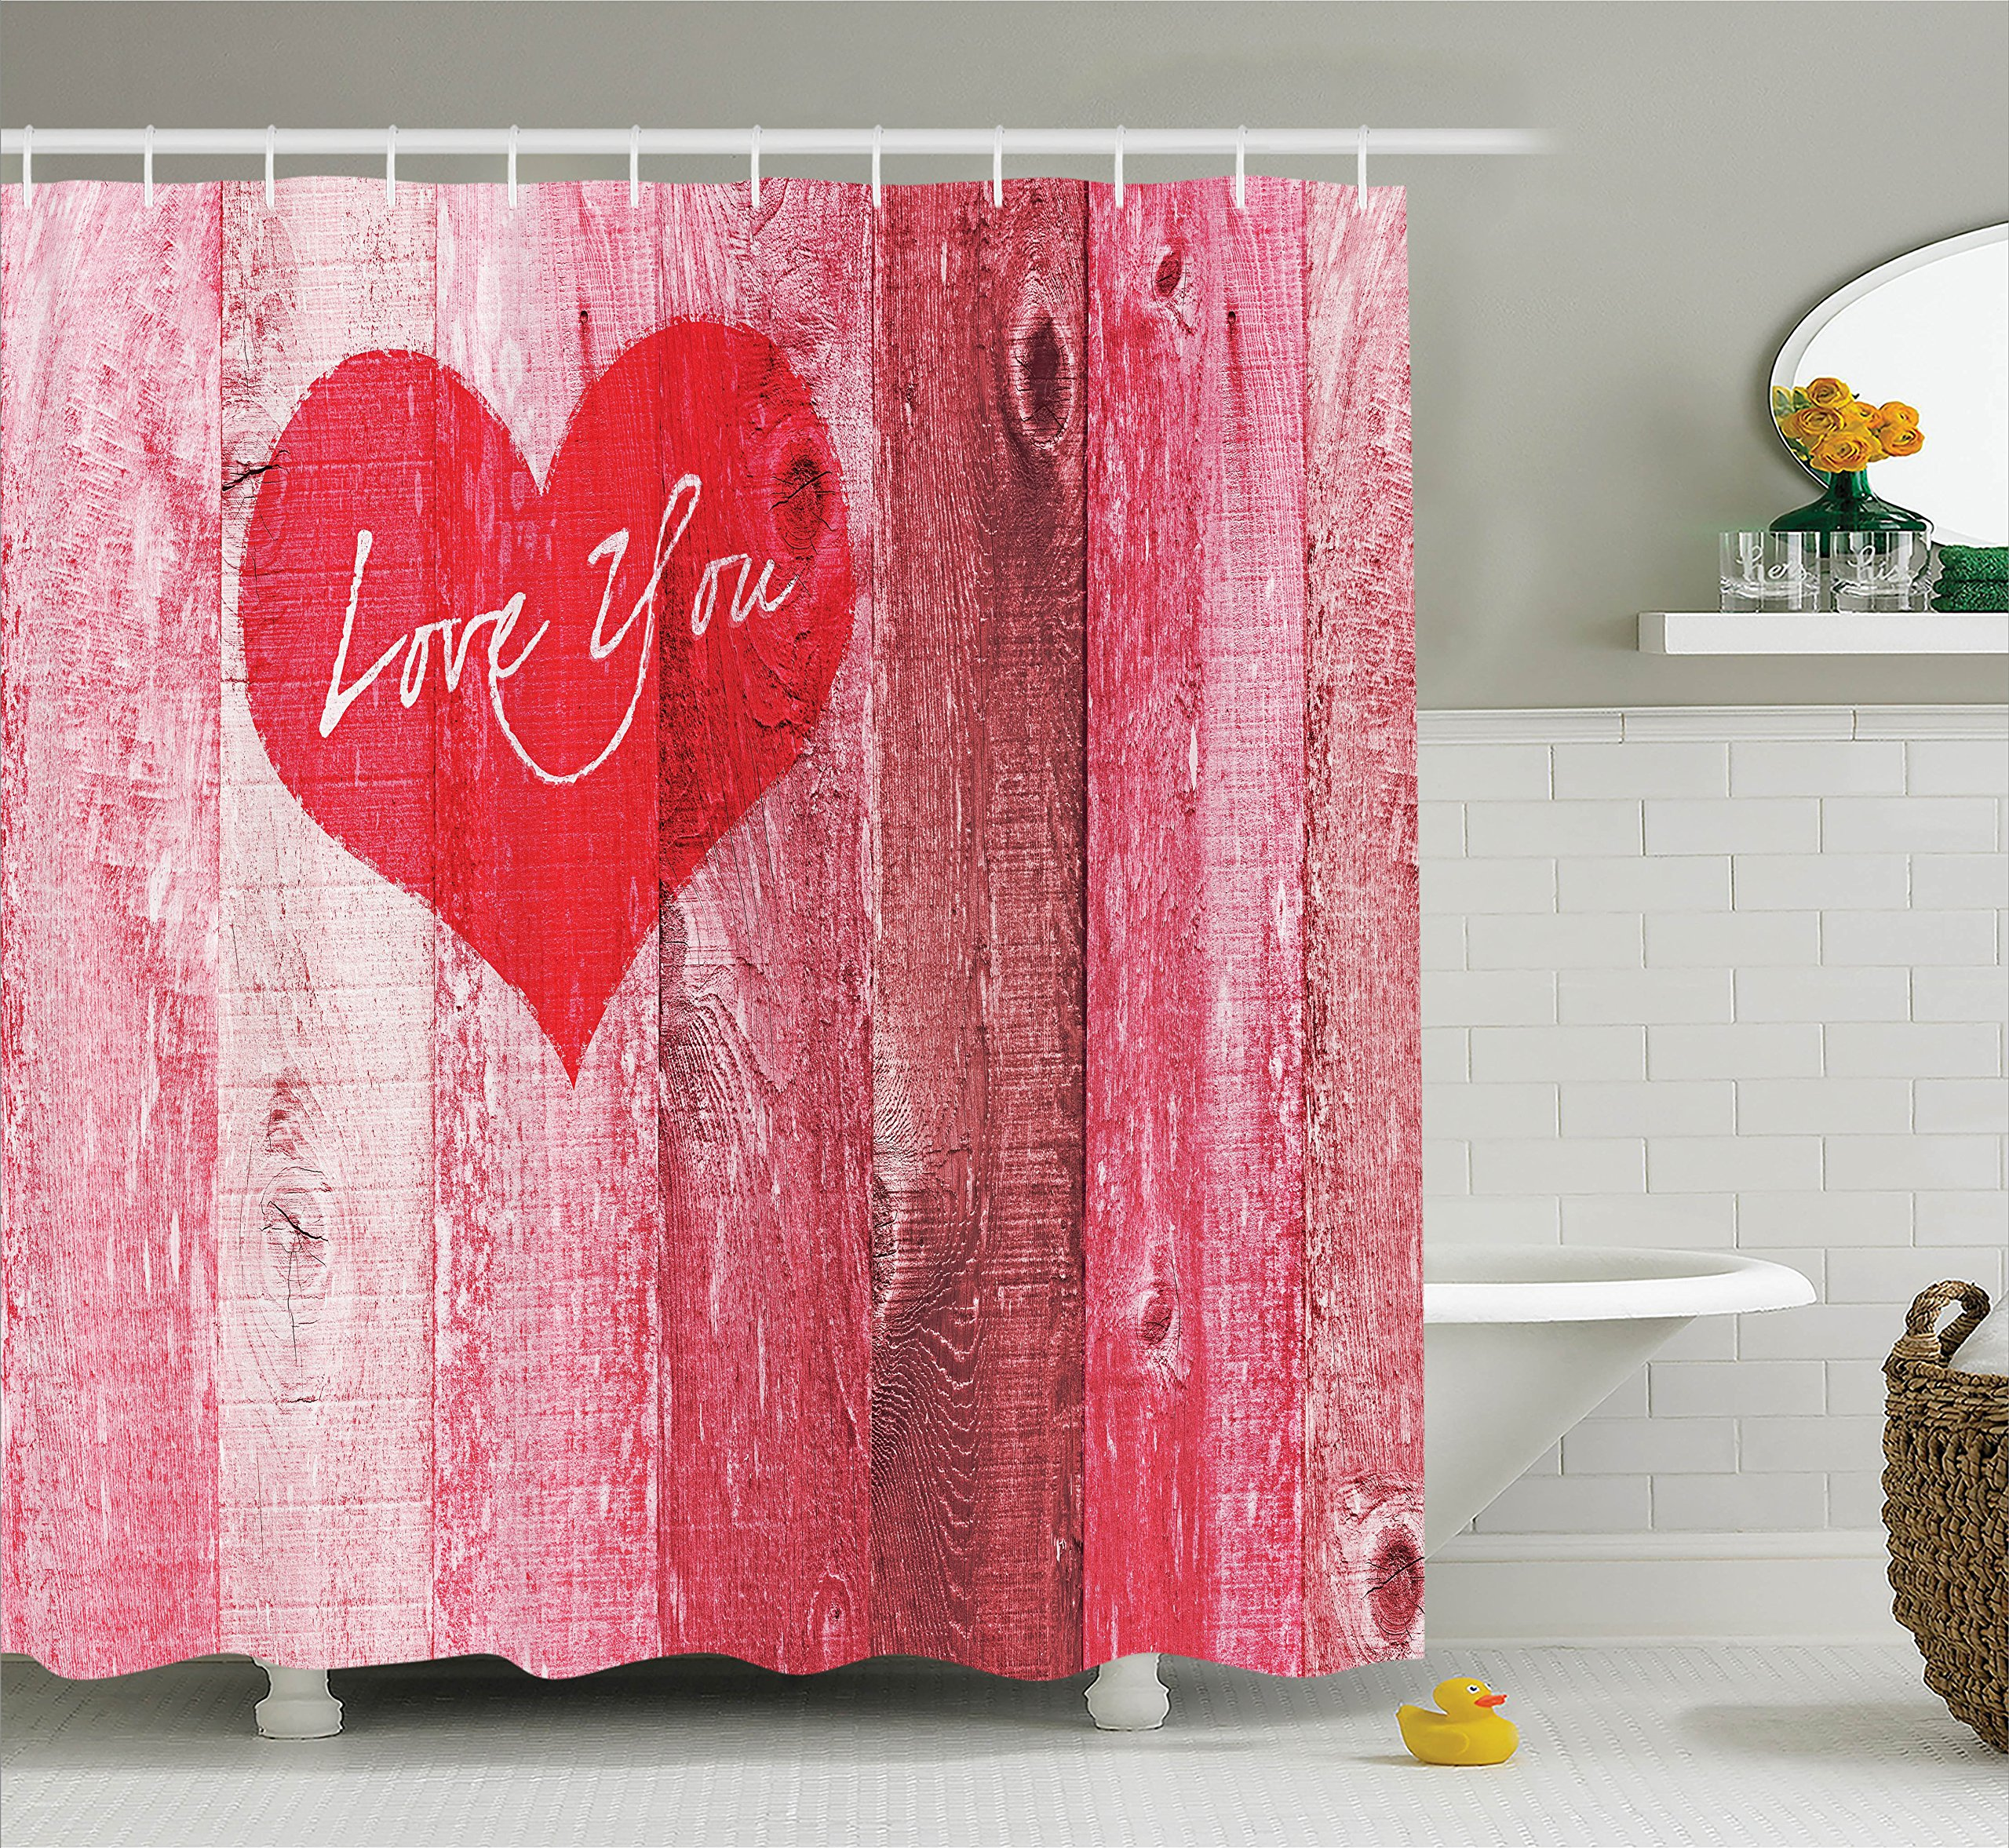 99 Super Cool Shower Curtains to Transform Your Bathroom Today